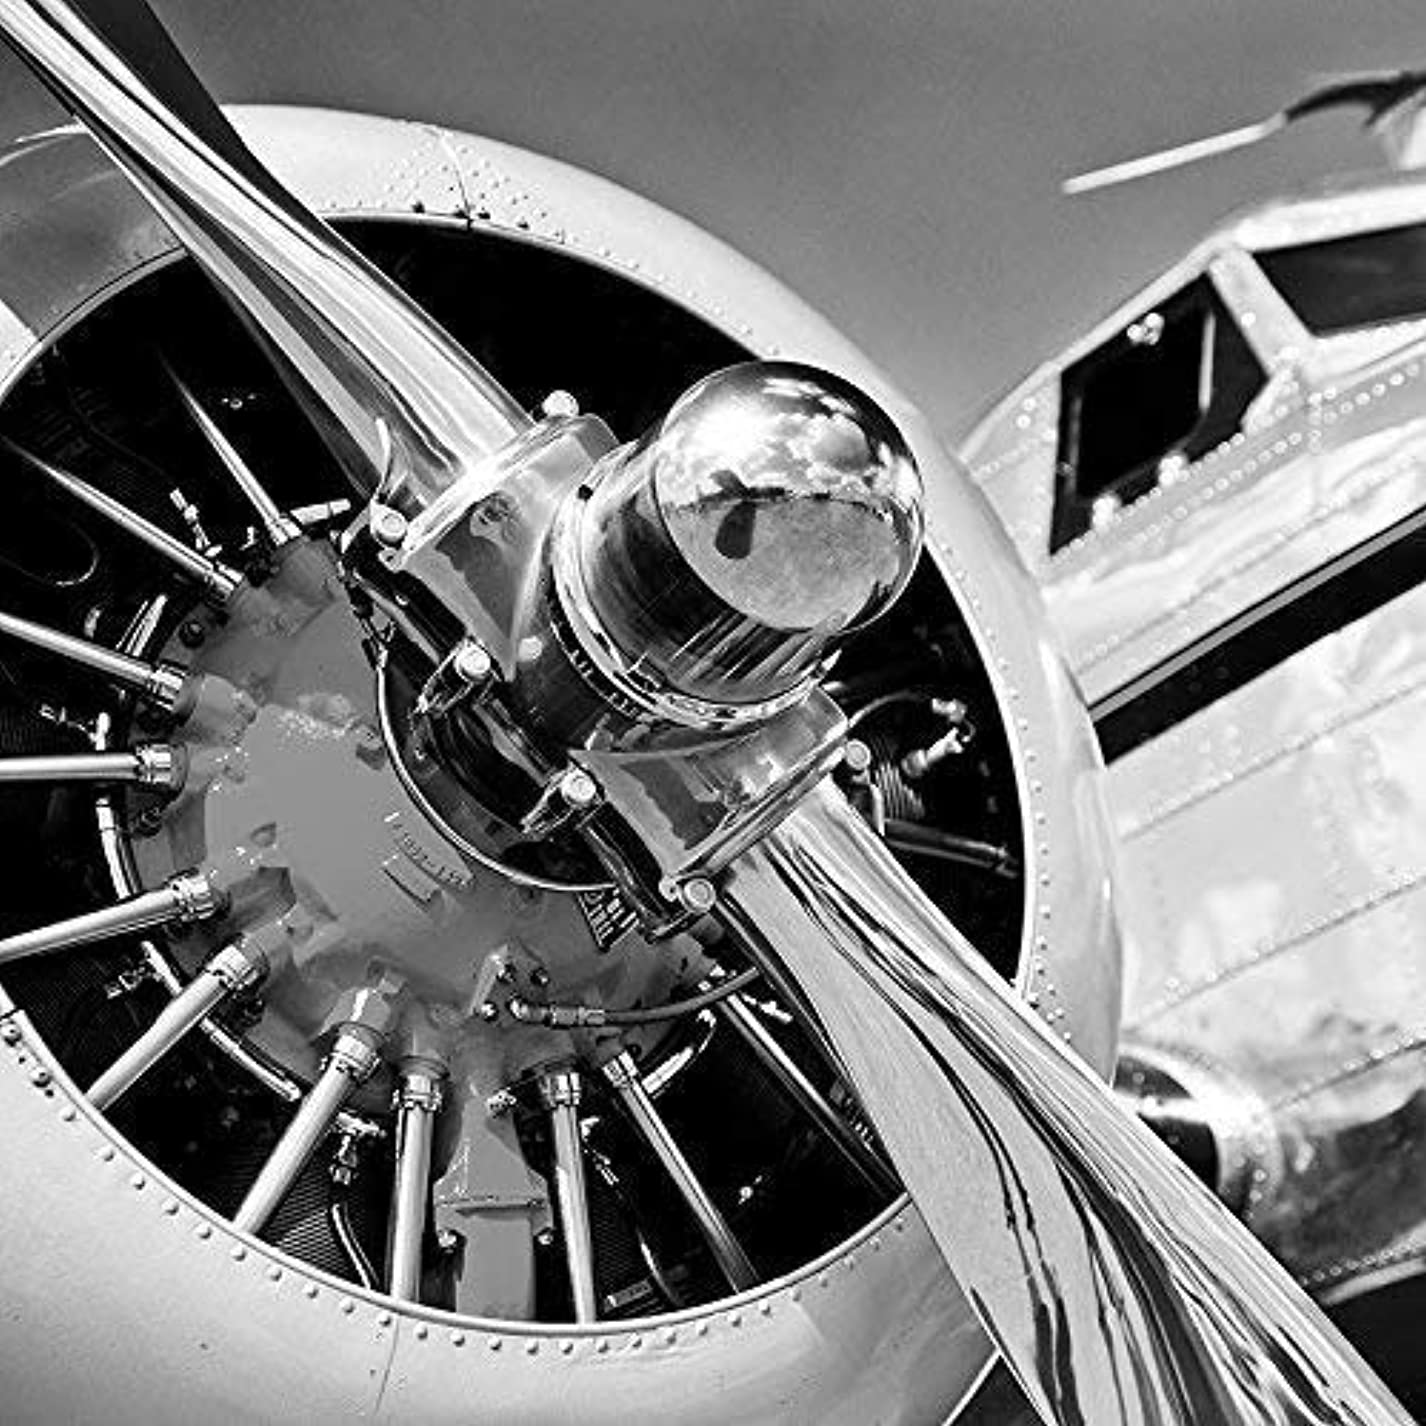 Plane Propeller Military Fighter Aviation Black and White Photograph or Canvas hol876539076396